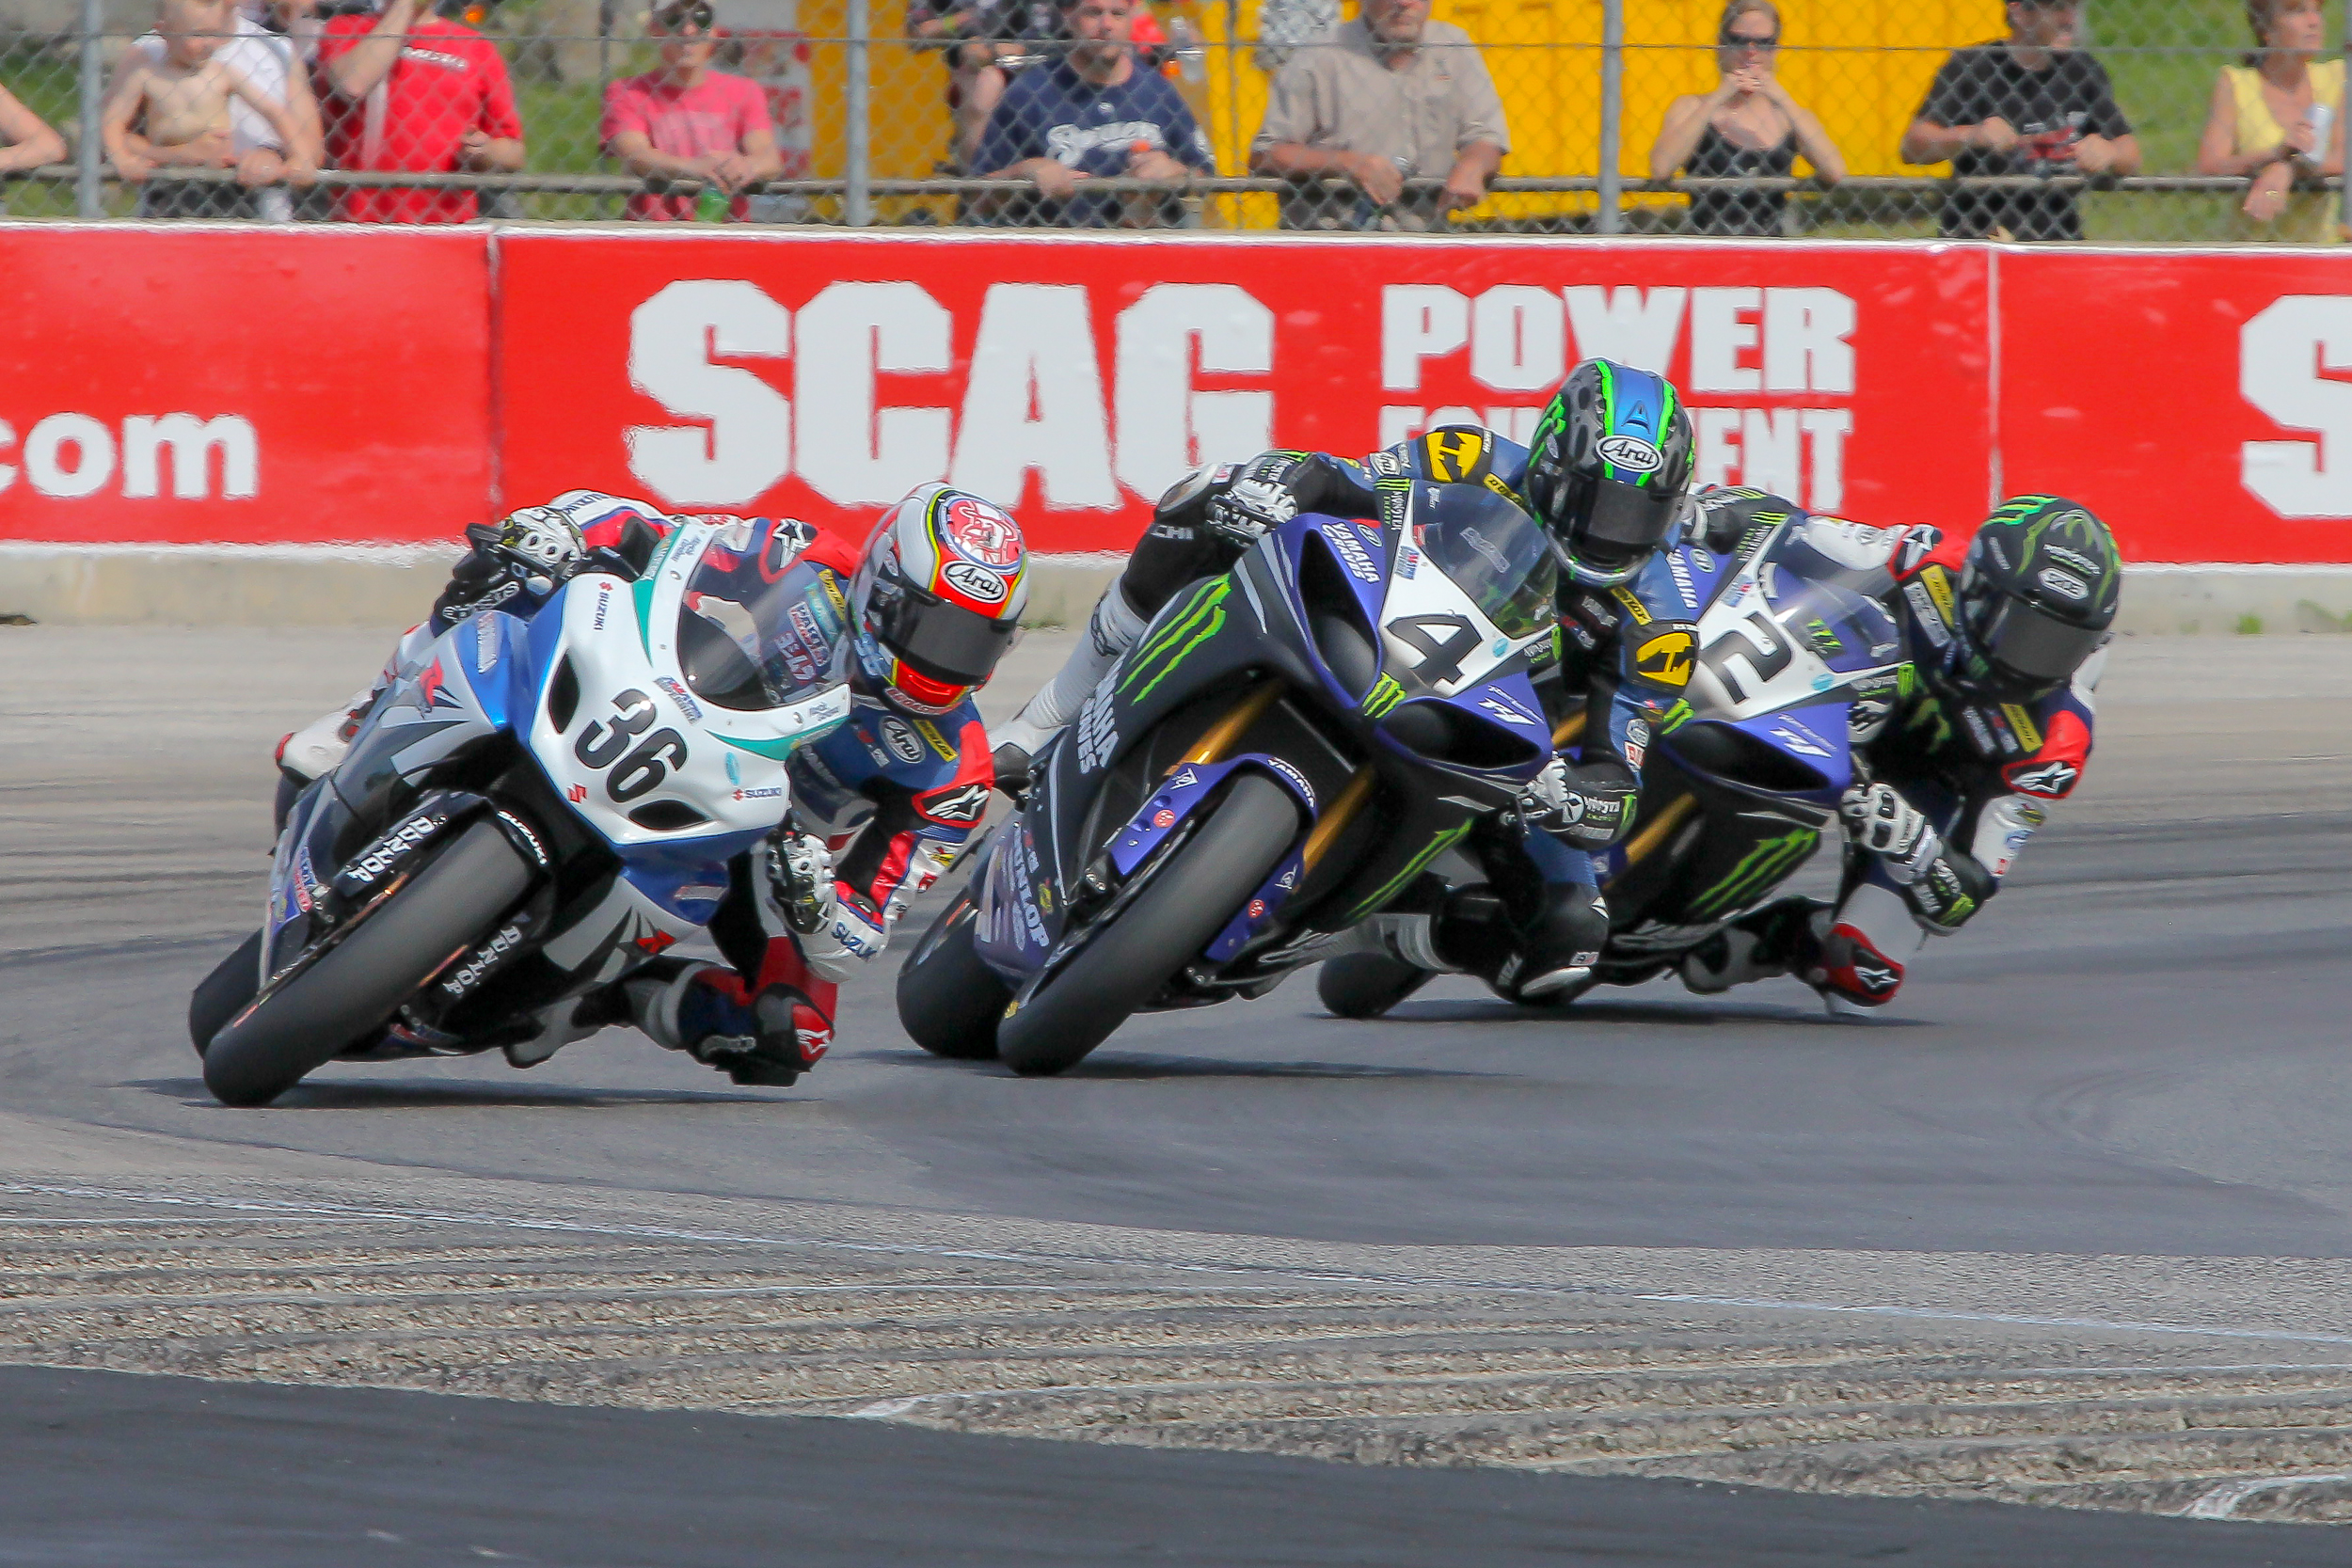 Battle between #36 Cardenas leading in first lap coming out of Turn 5 being pressured by #4 Hayes and #2 Beaubier